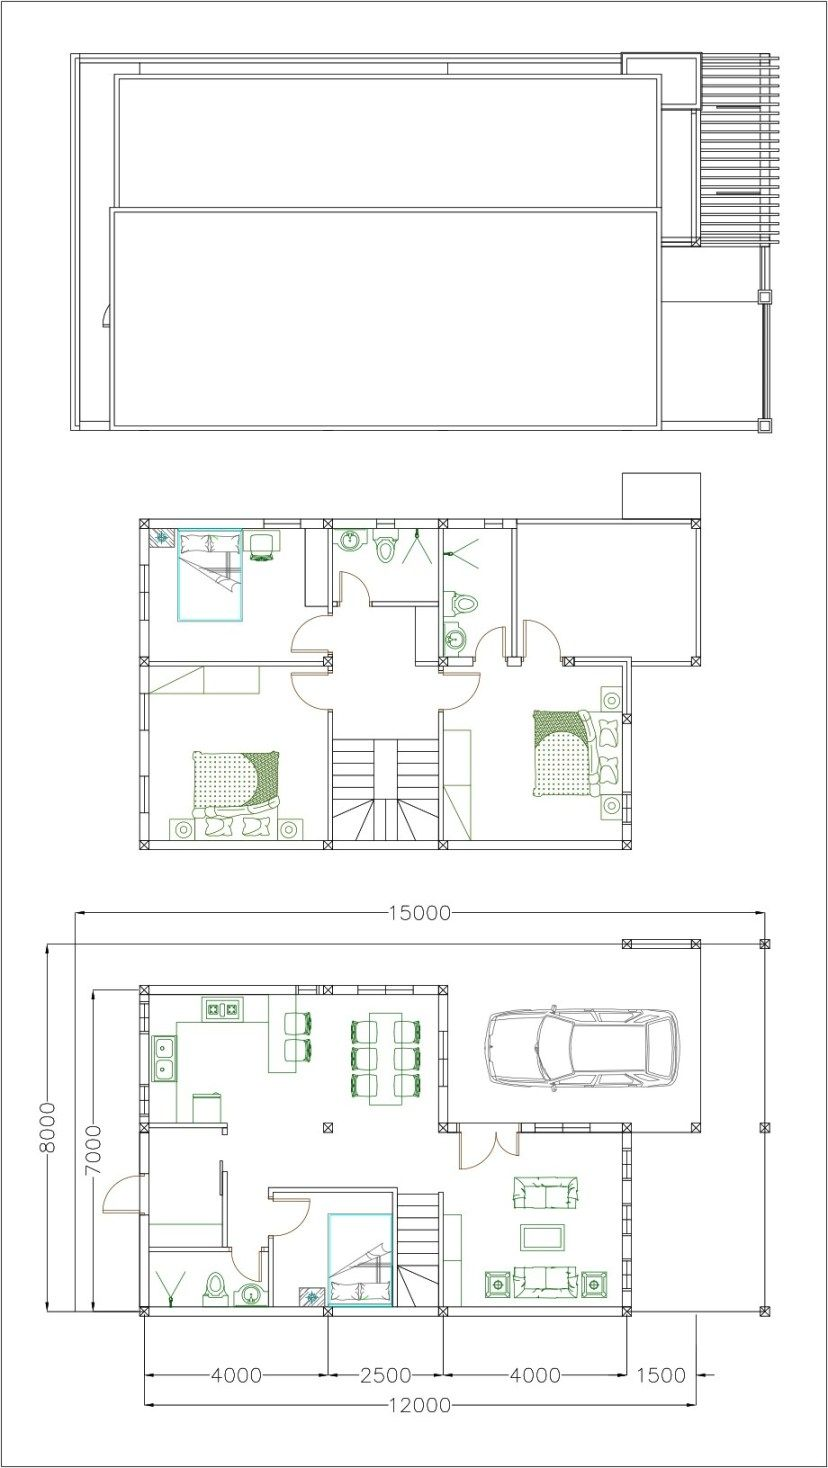 House Plans 7x12m With 4 Bedrooms Plot 8x15 Sam House Plans Home Design Plan House Plans Model House Plan